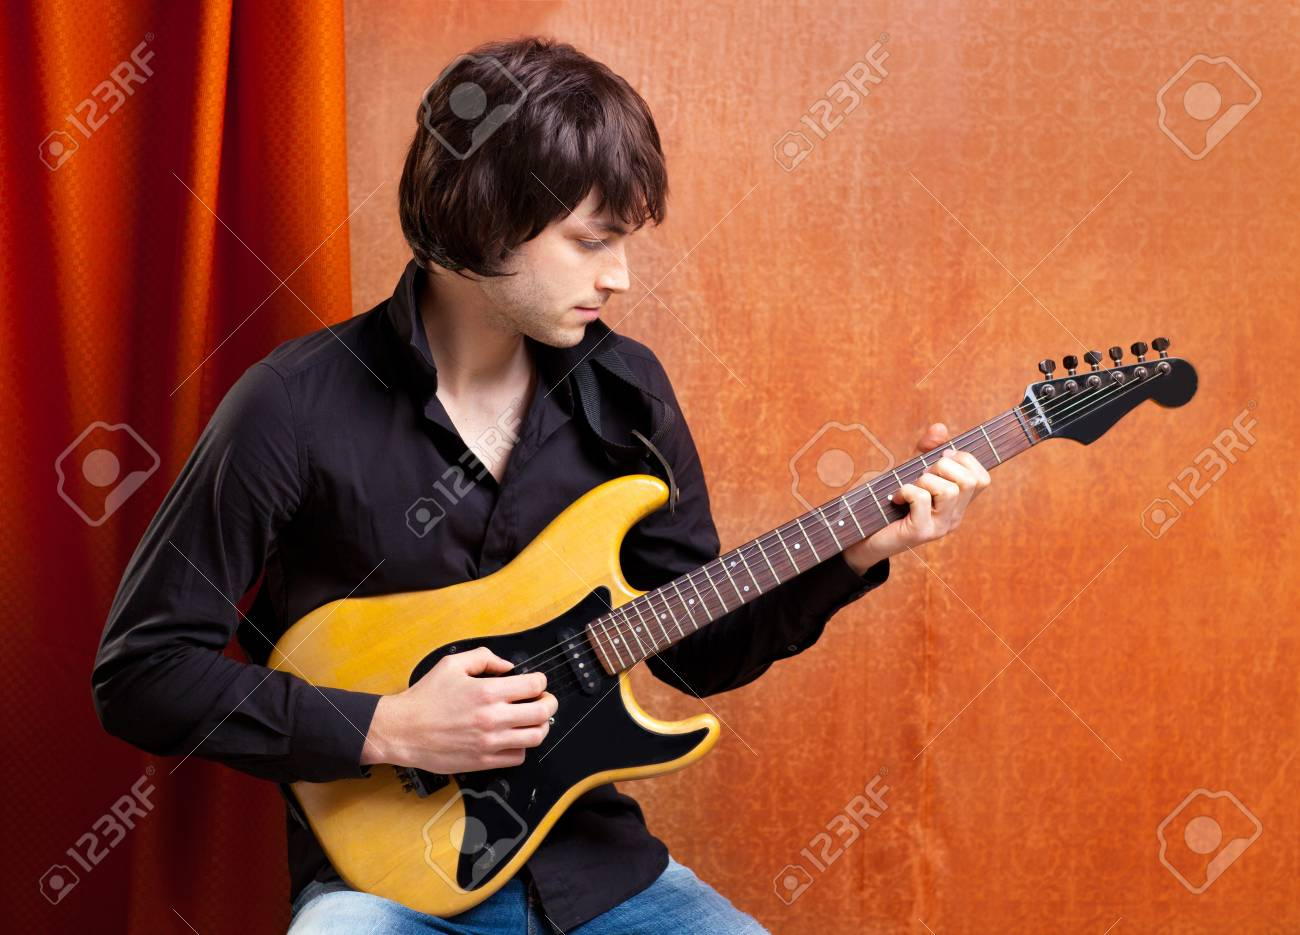 british indie pop rock look young musician guitar player man Stock Photo - 13123413